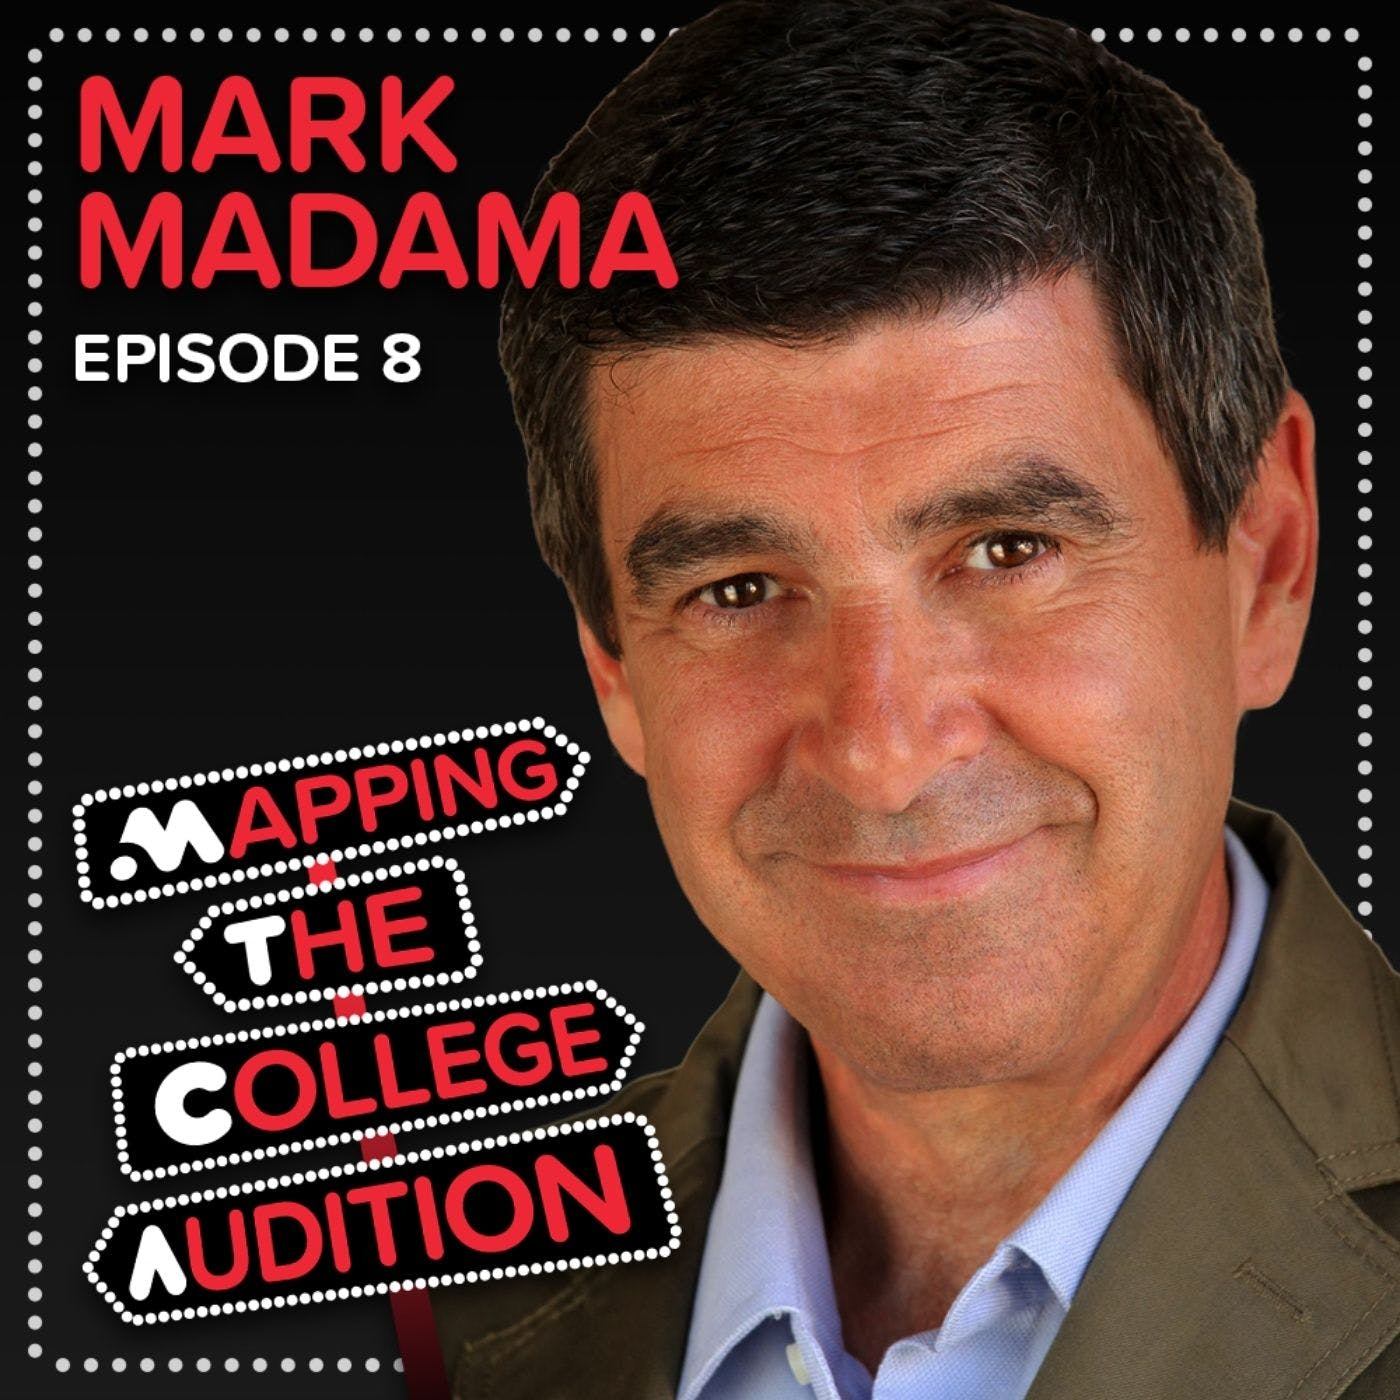 """Ep. 8 (CDD): Mark Madama from University of Michigan on, """"Just"""" Being Yourself, Academics, A Full Life Outside of Theater, & Social Media"""